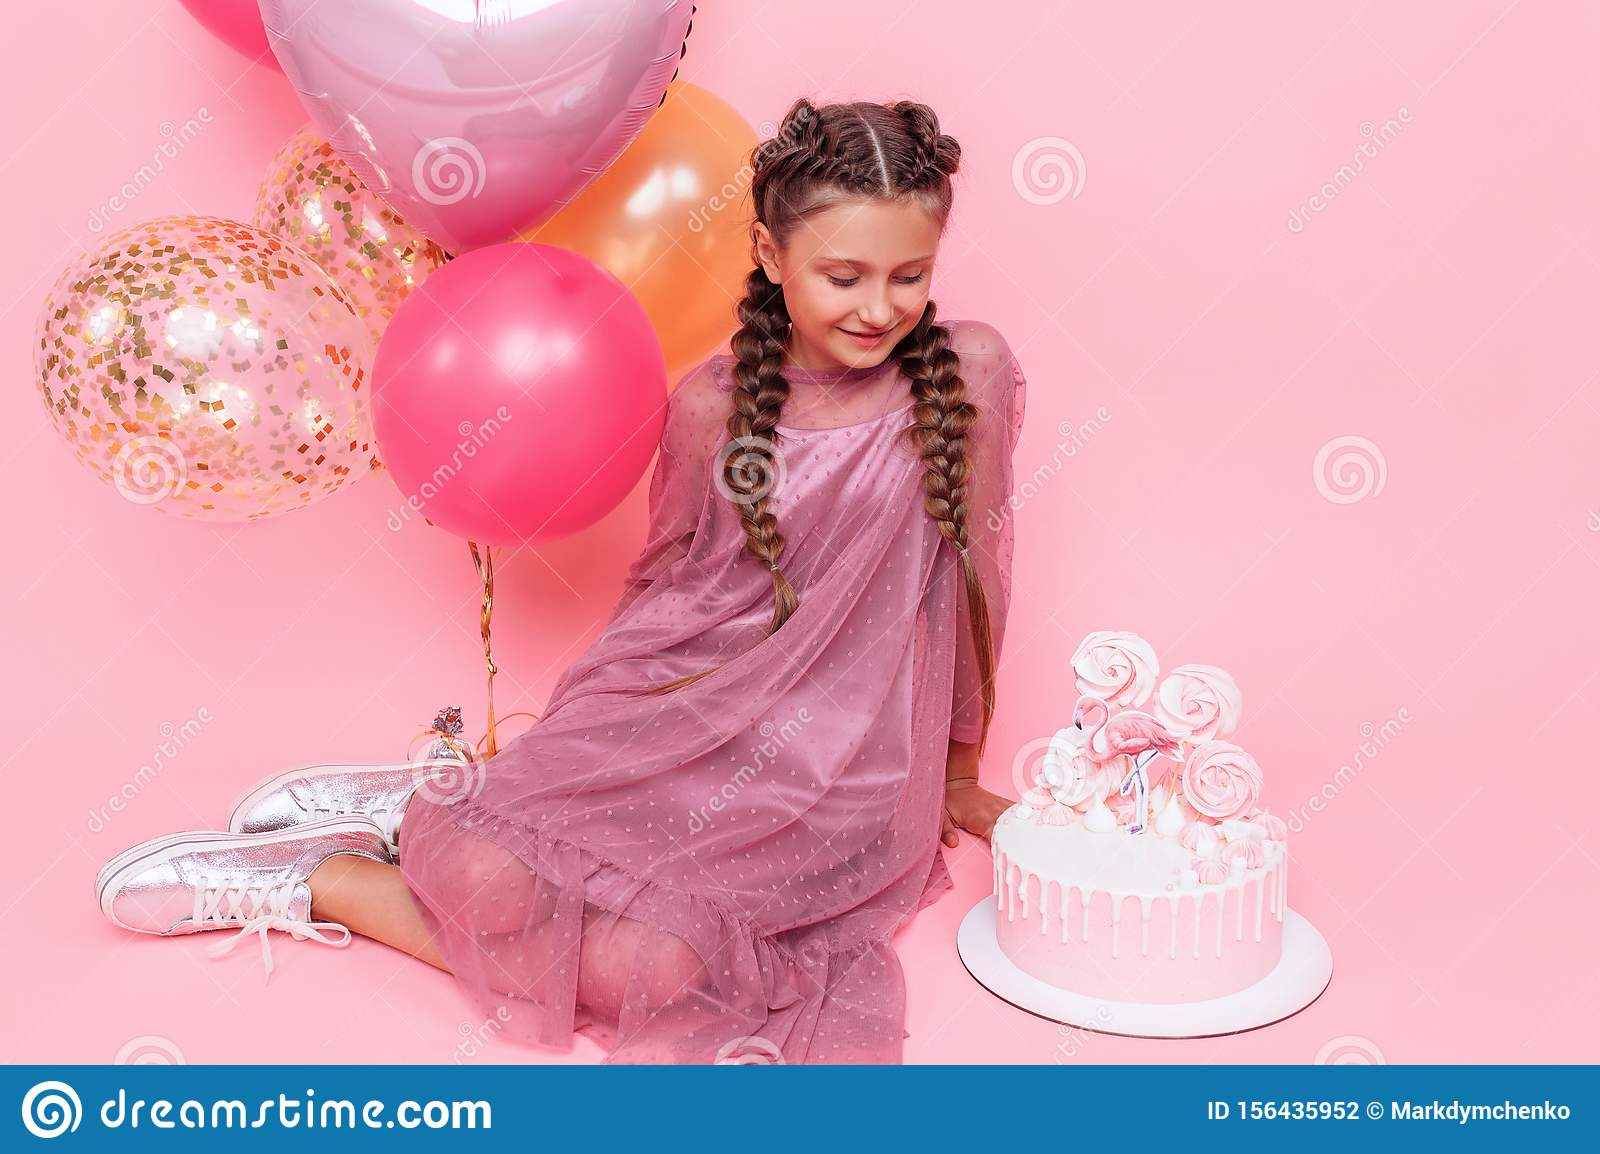 Stupendous Teenage Girl With Balloons And A Birthday Cake Posing On A Pink Funny Birthday Cards Online Overcheapnameinfo